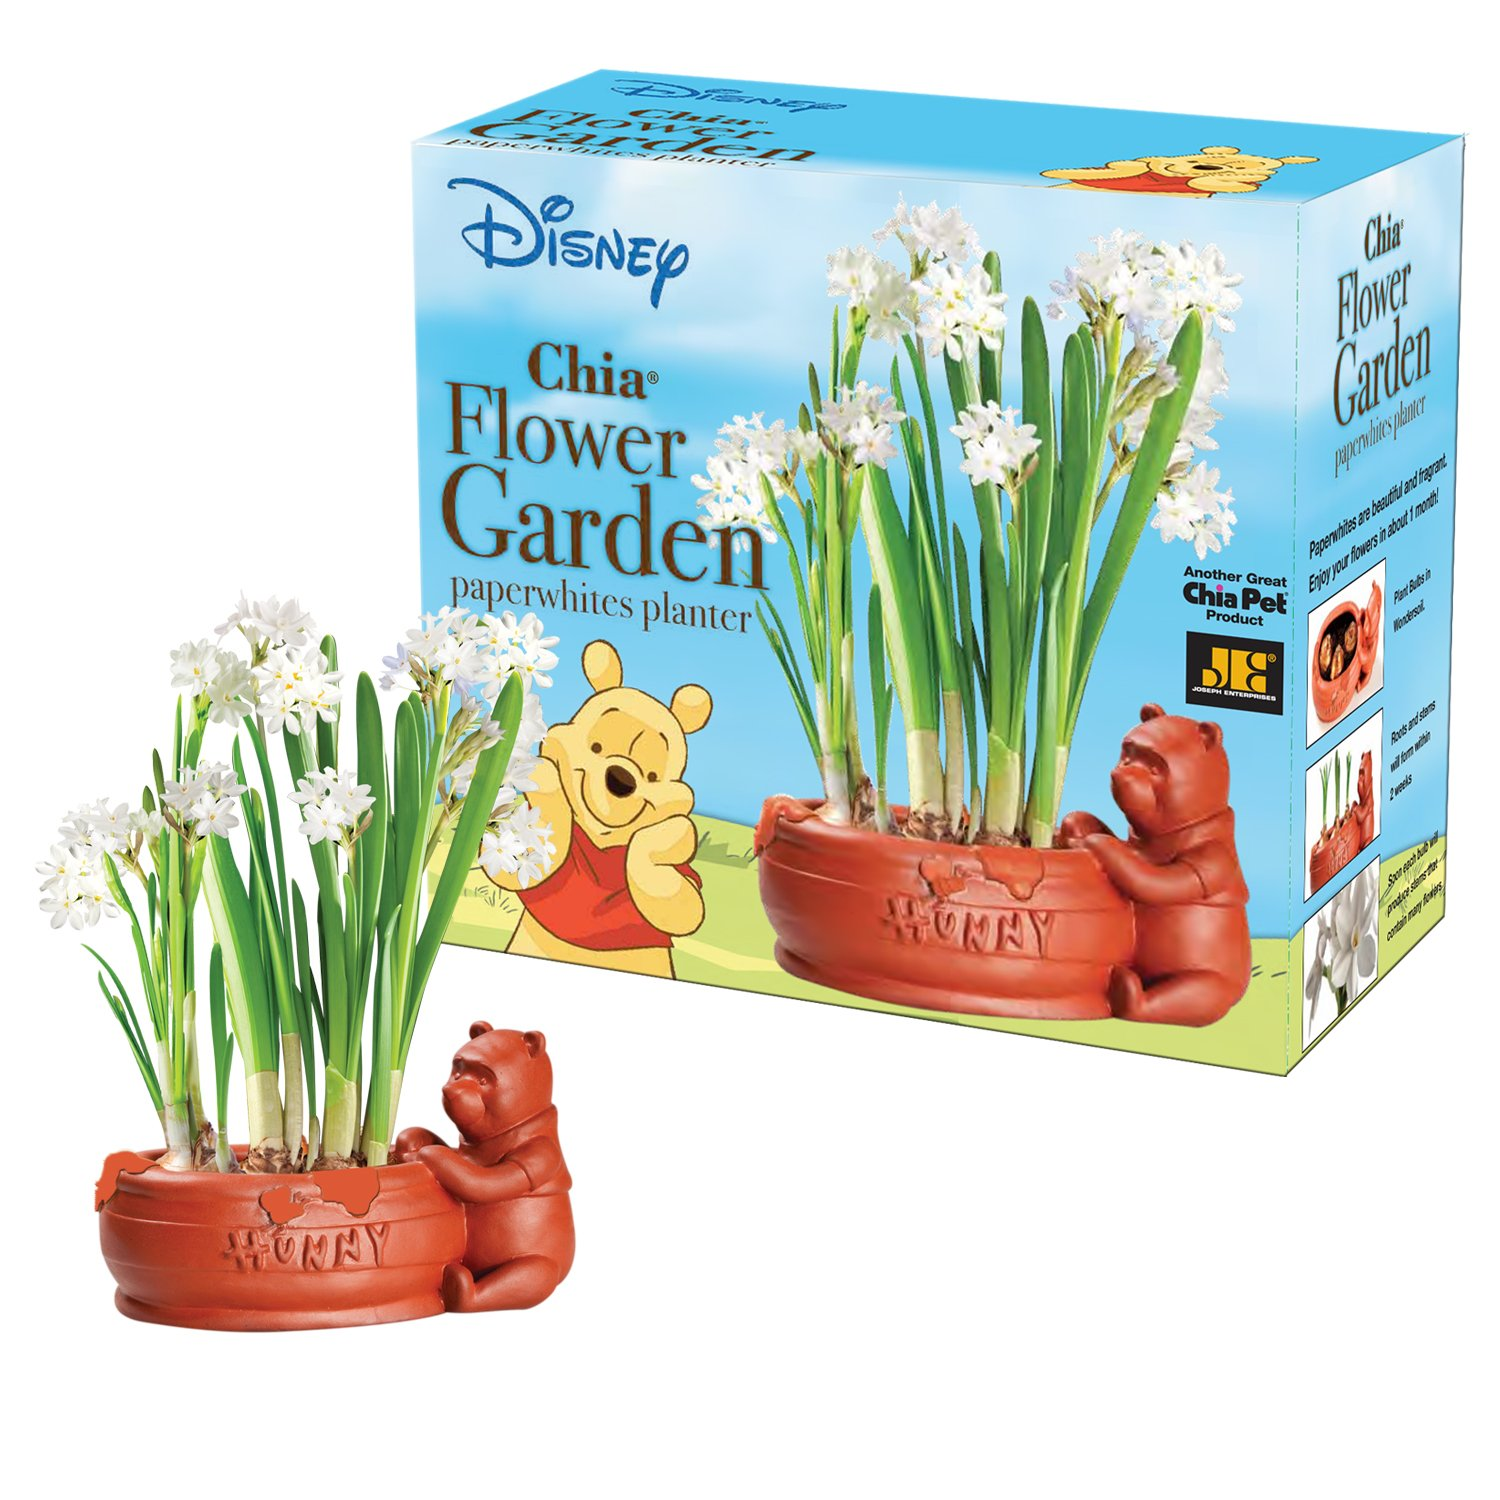 Chia pet herb garden - Amazon Com Chia Winnie The Pooh Flower Garden Planter Discontinued By Manufacturer Plants Garden Outdoor